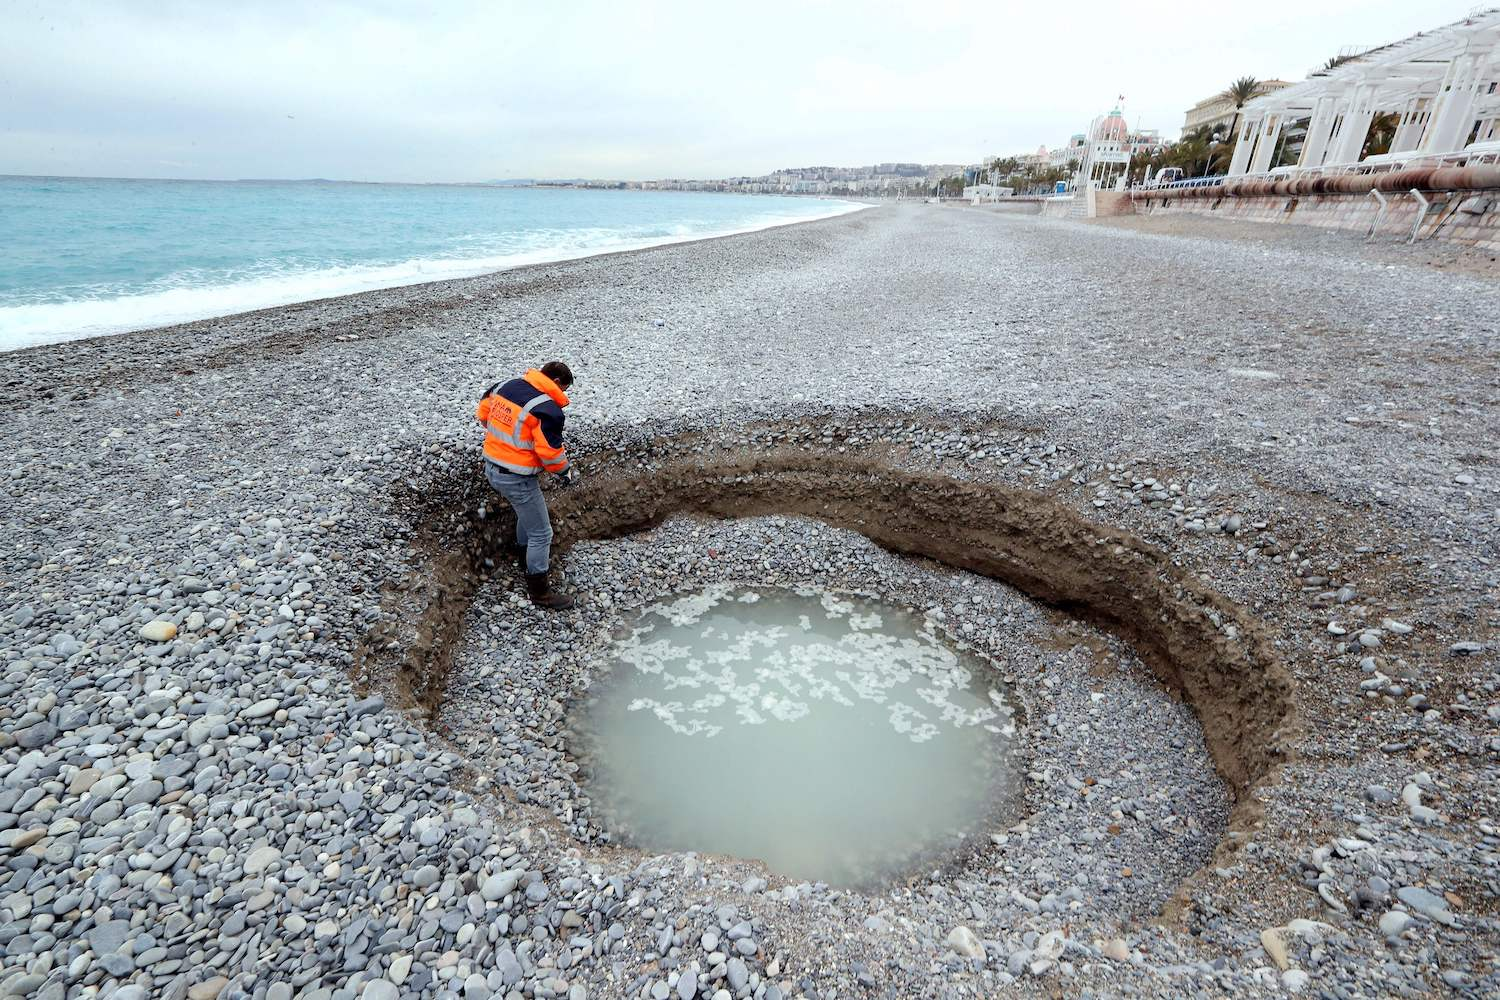 TOPSHOT - People looks at a two-metre deep and five-meter wide crater, filled with brackish water, which has formed on the beach of Lido on the French riviera city of Nice on February 1, 2018.  / AFP PHOTO / VALERY HACHE        (Photo credit should read VALERY HACHE/AFP/Getty Images)